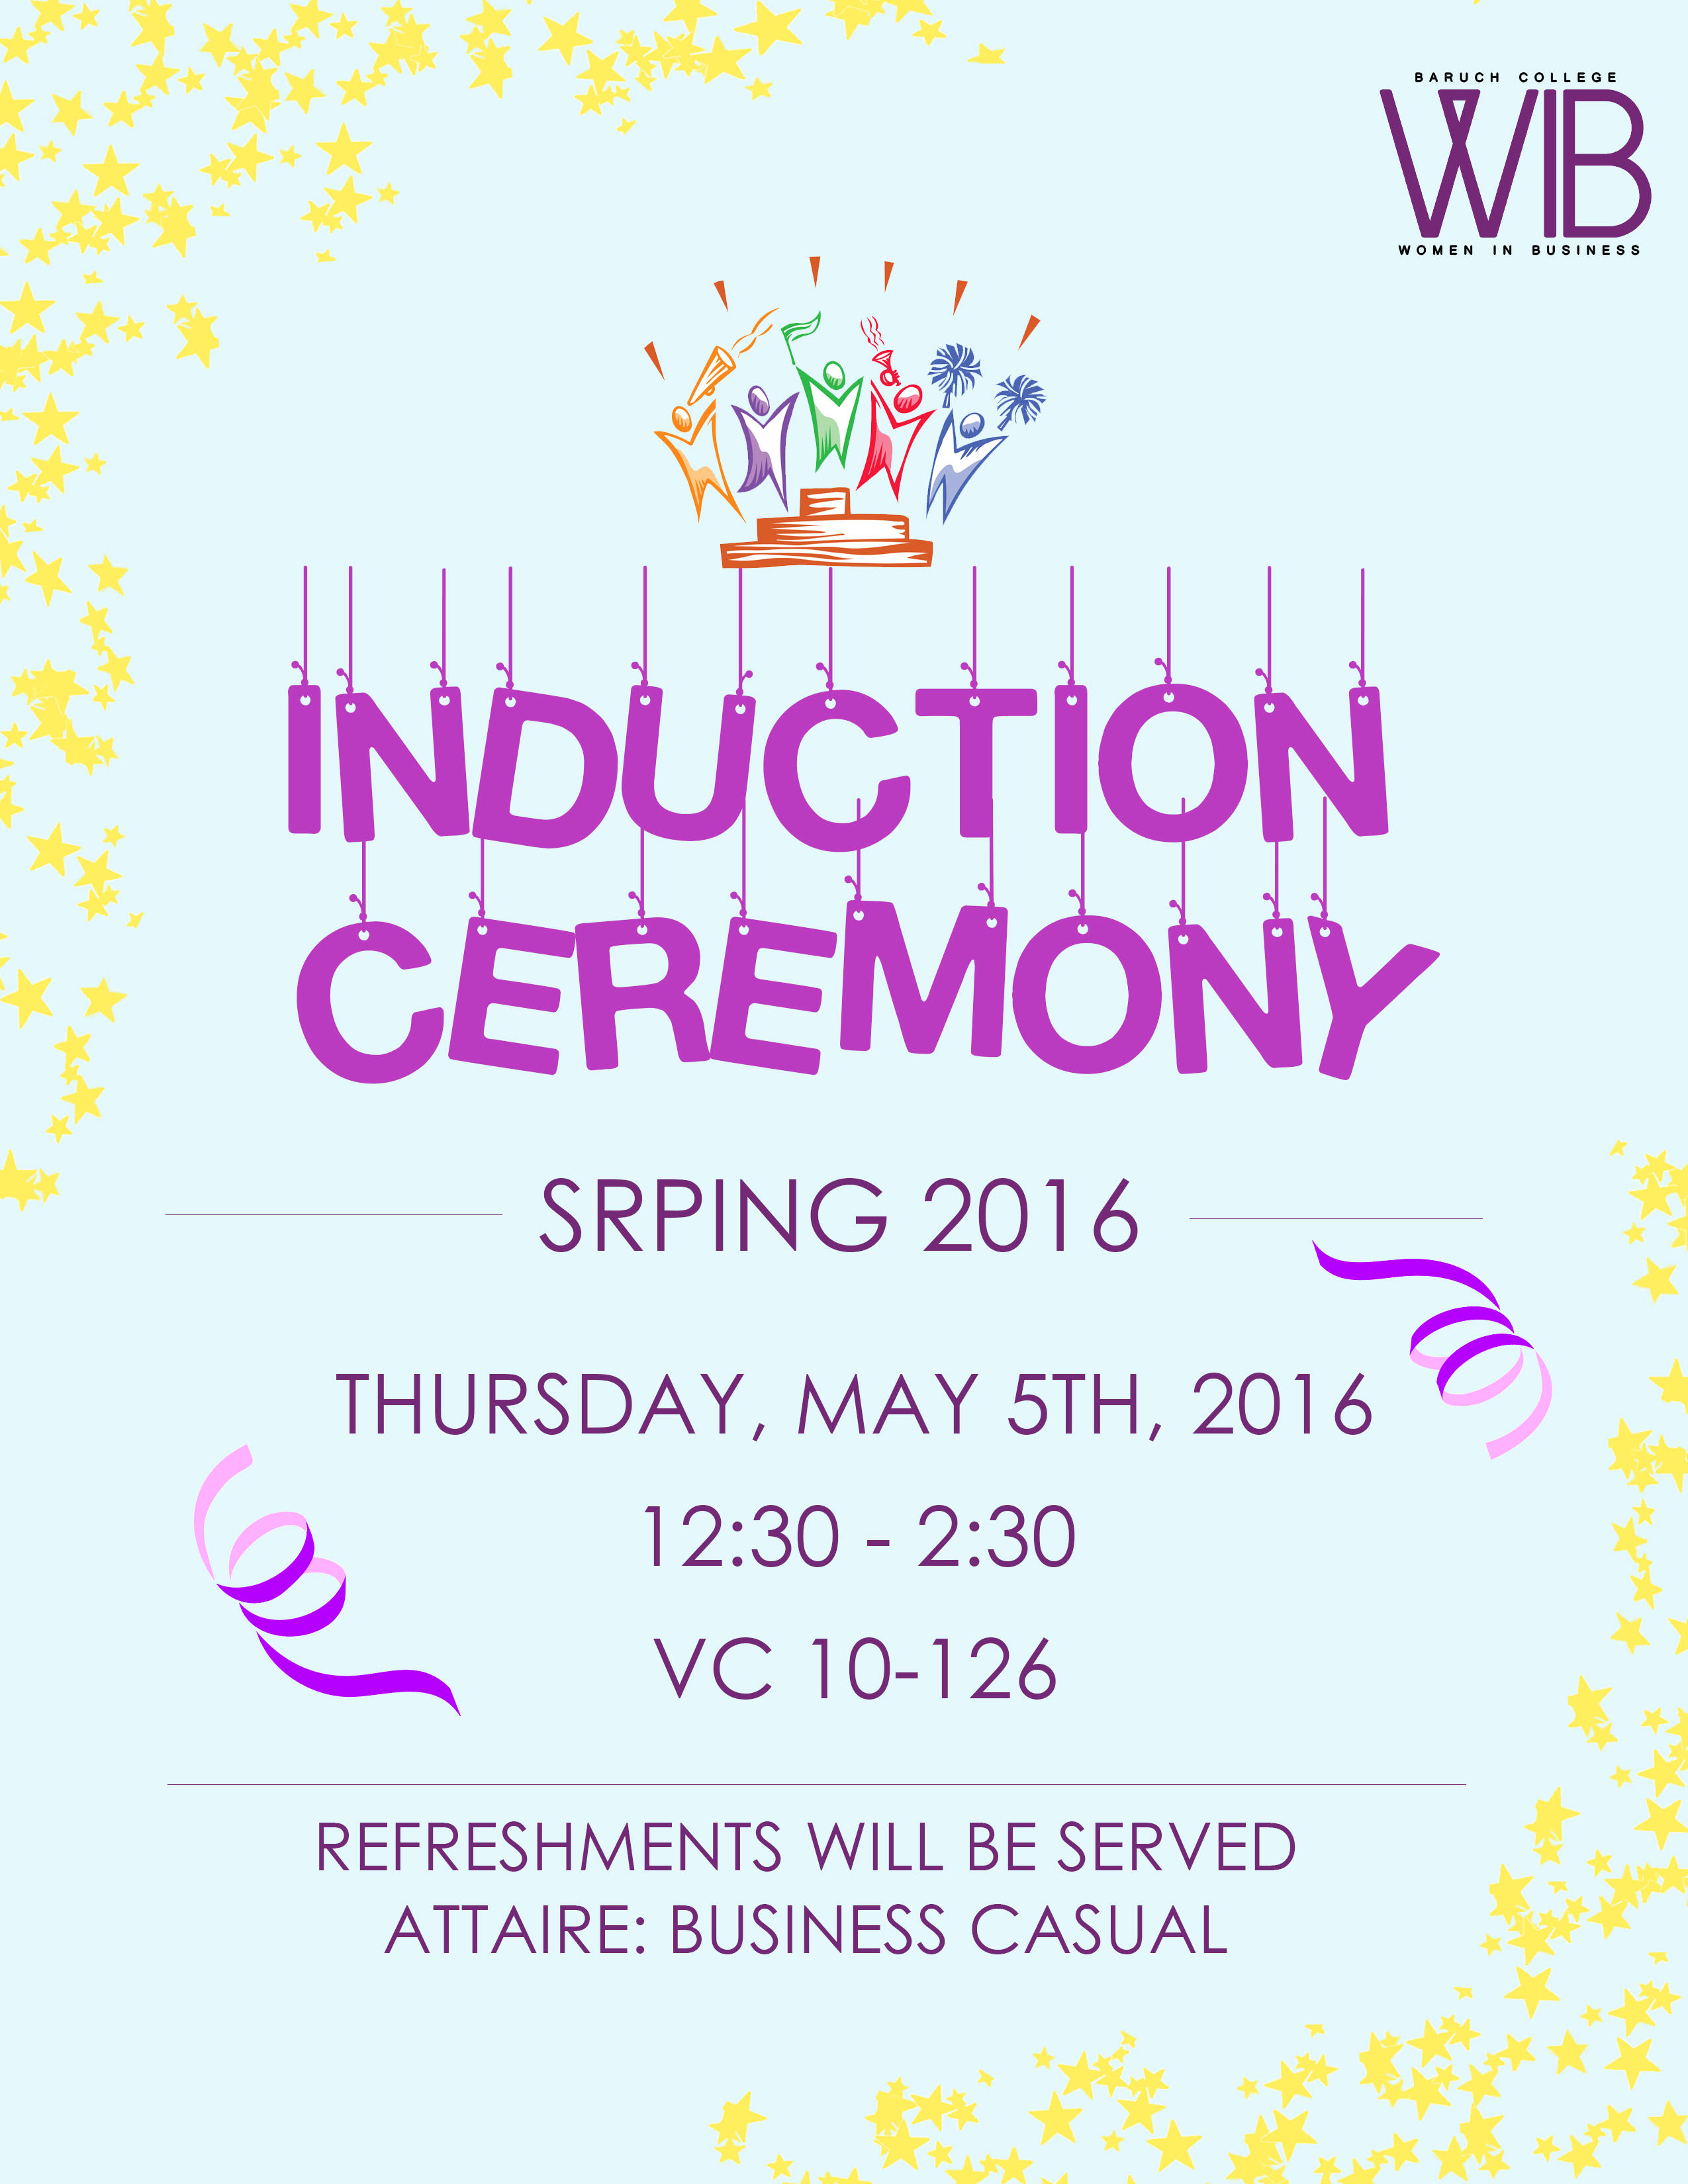 Spring 2016 Induction